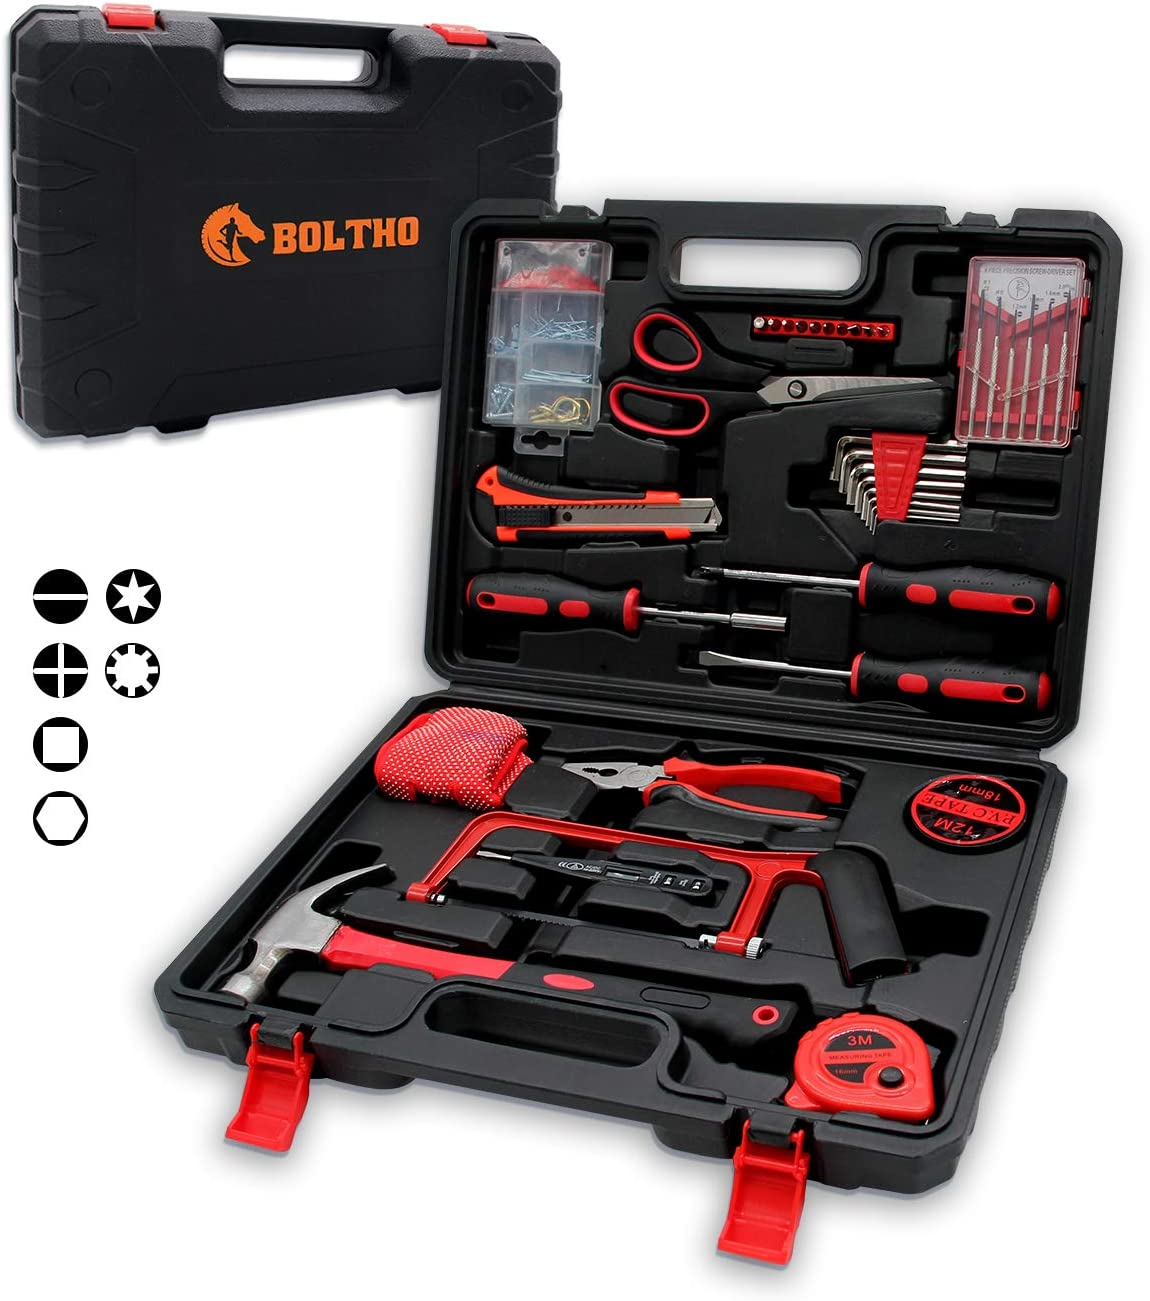 BOLTHO 135 Piece Home Repair Tool Kit, General Household Tool Kit for Home Maintenance with Plastic Toolbox Storage Case